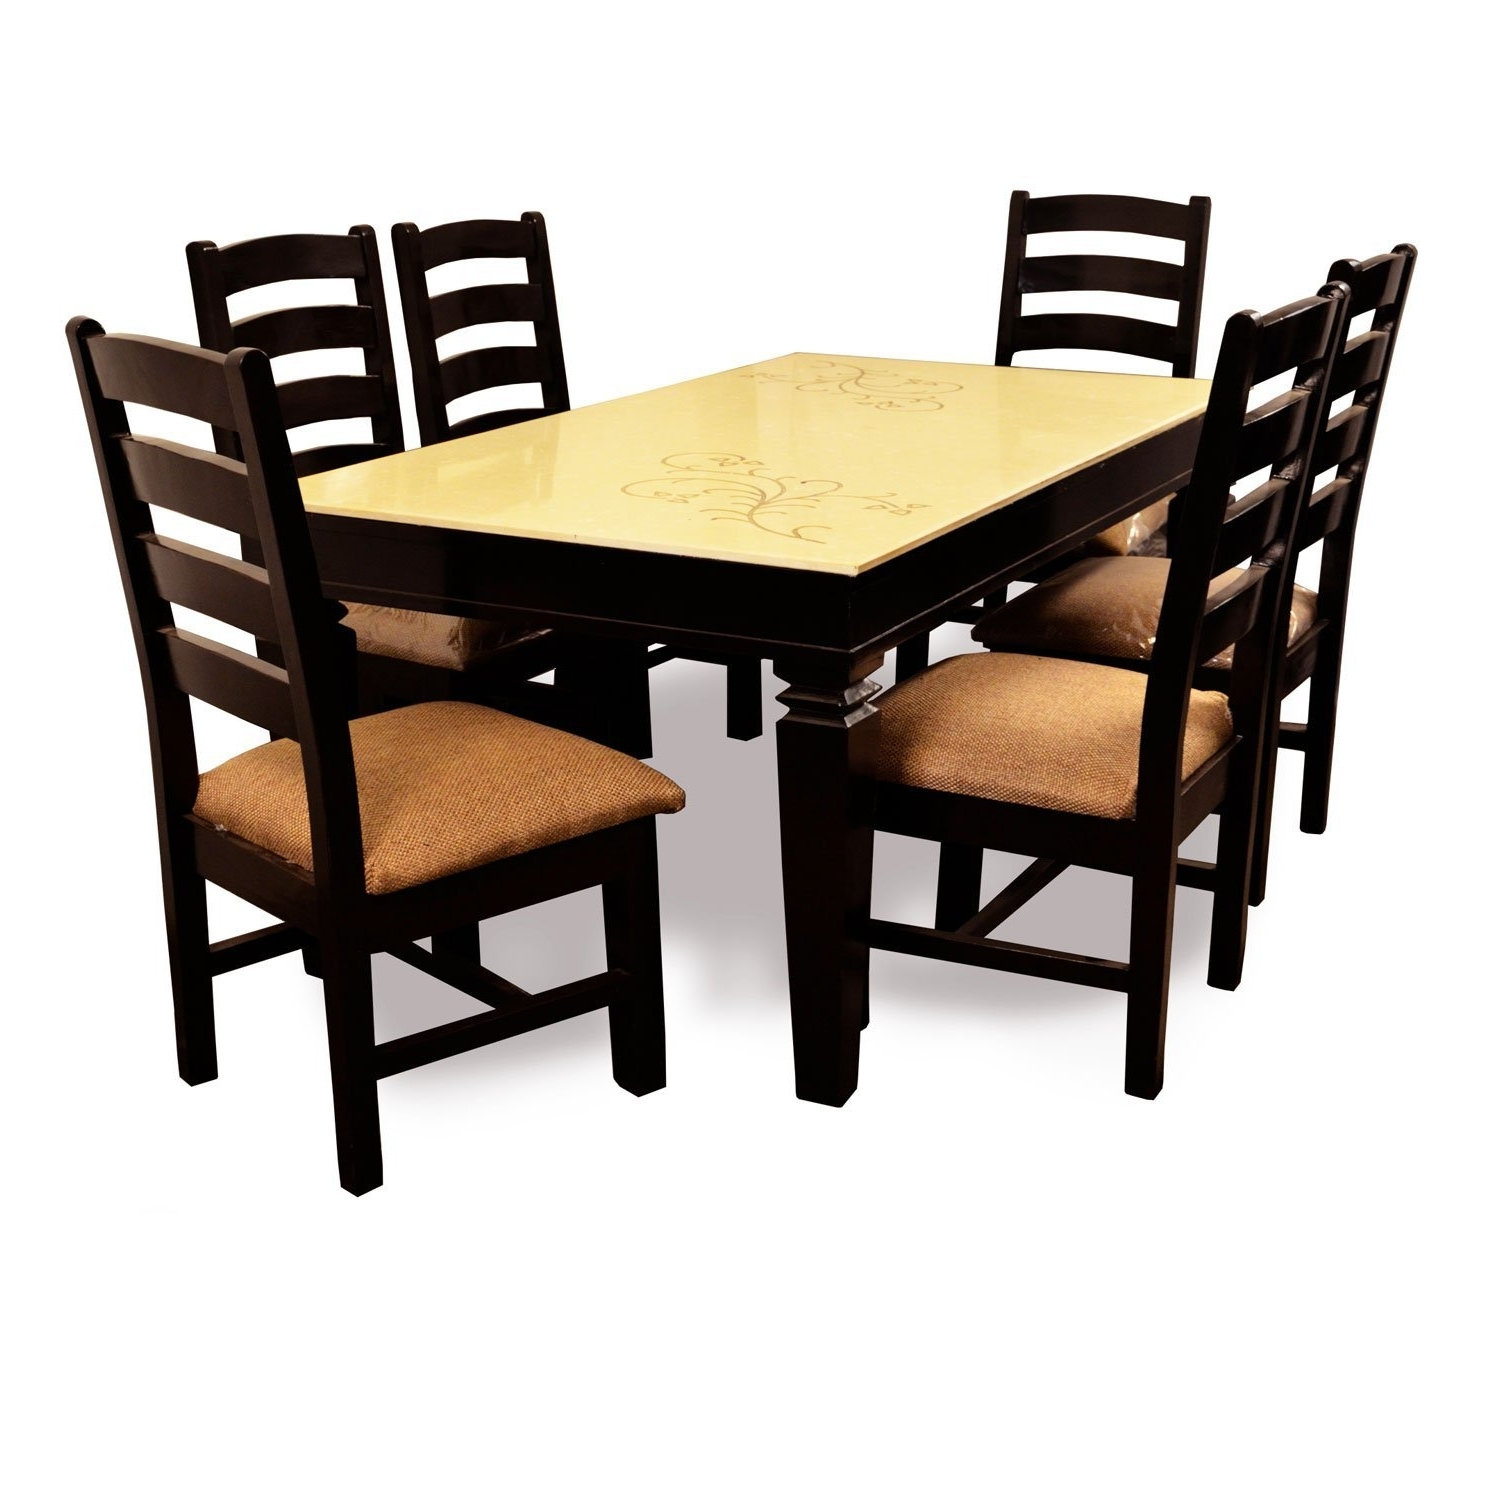 Newest 6 Seater Dining Tables Pertaining To 6 Seater Dining Table, Six Seater Dining Table, Stylish Dining Table (View 1 of 25)